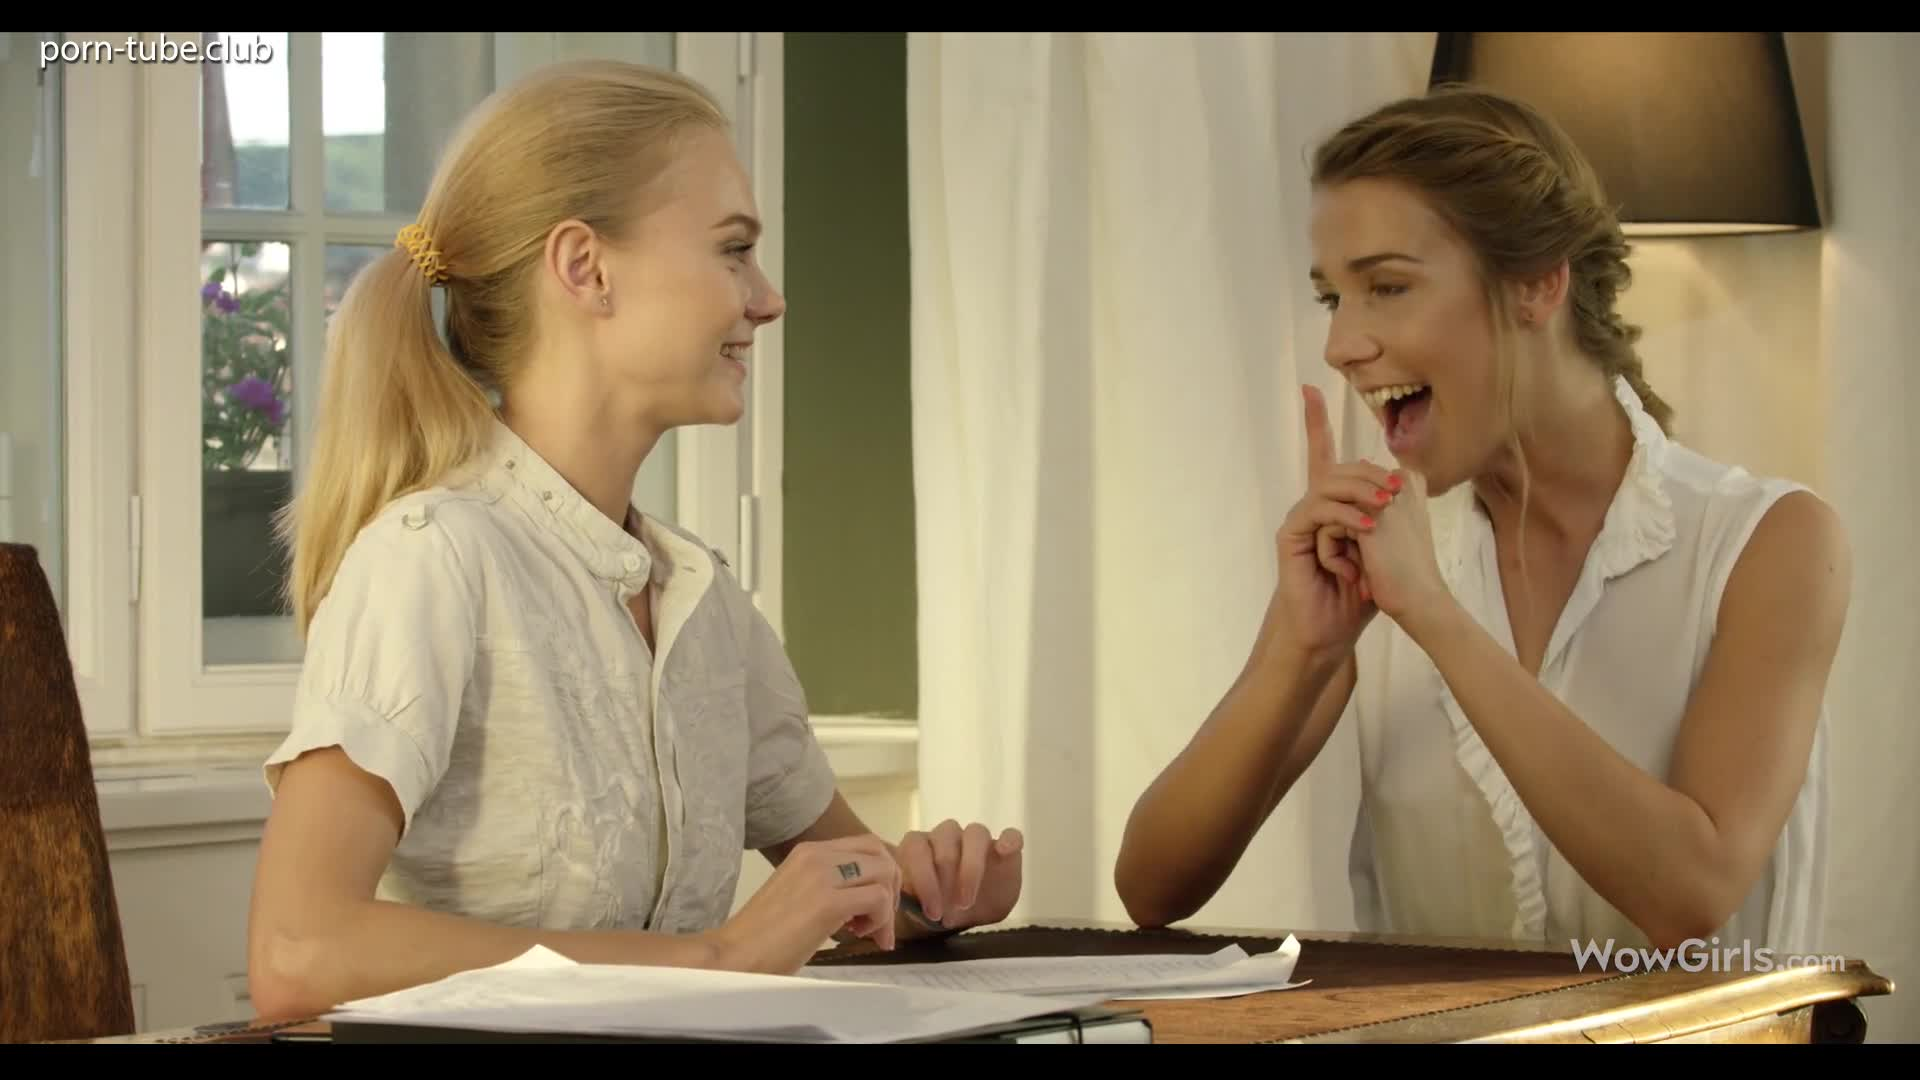 WowGirls 18.07.20 Alexis Crystal And Nancy A Seducing Her Teacher Episode 2